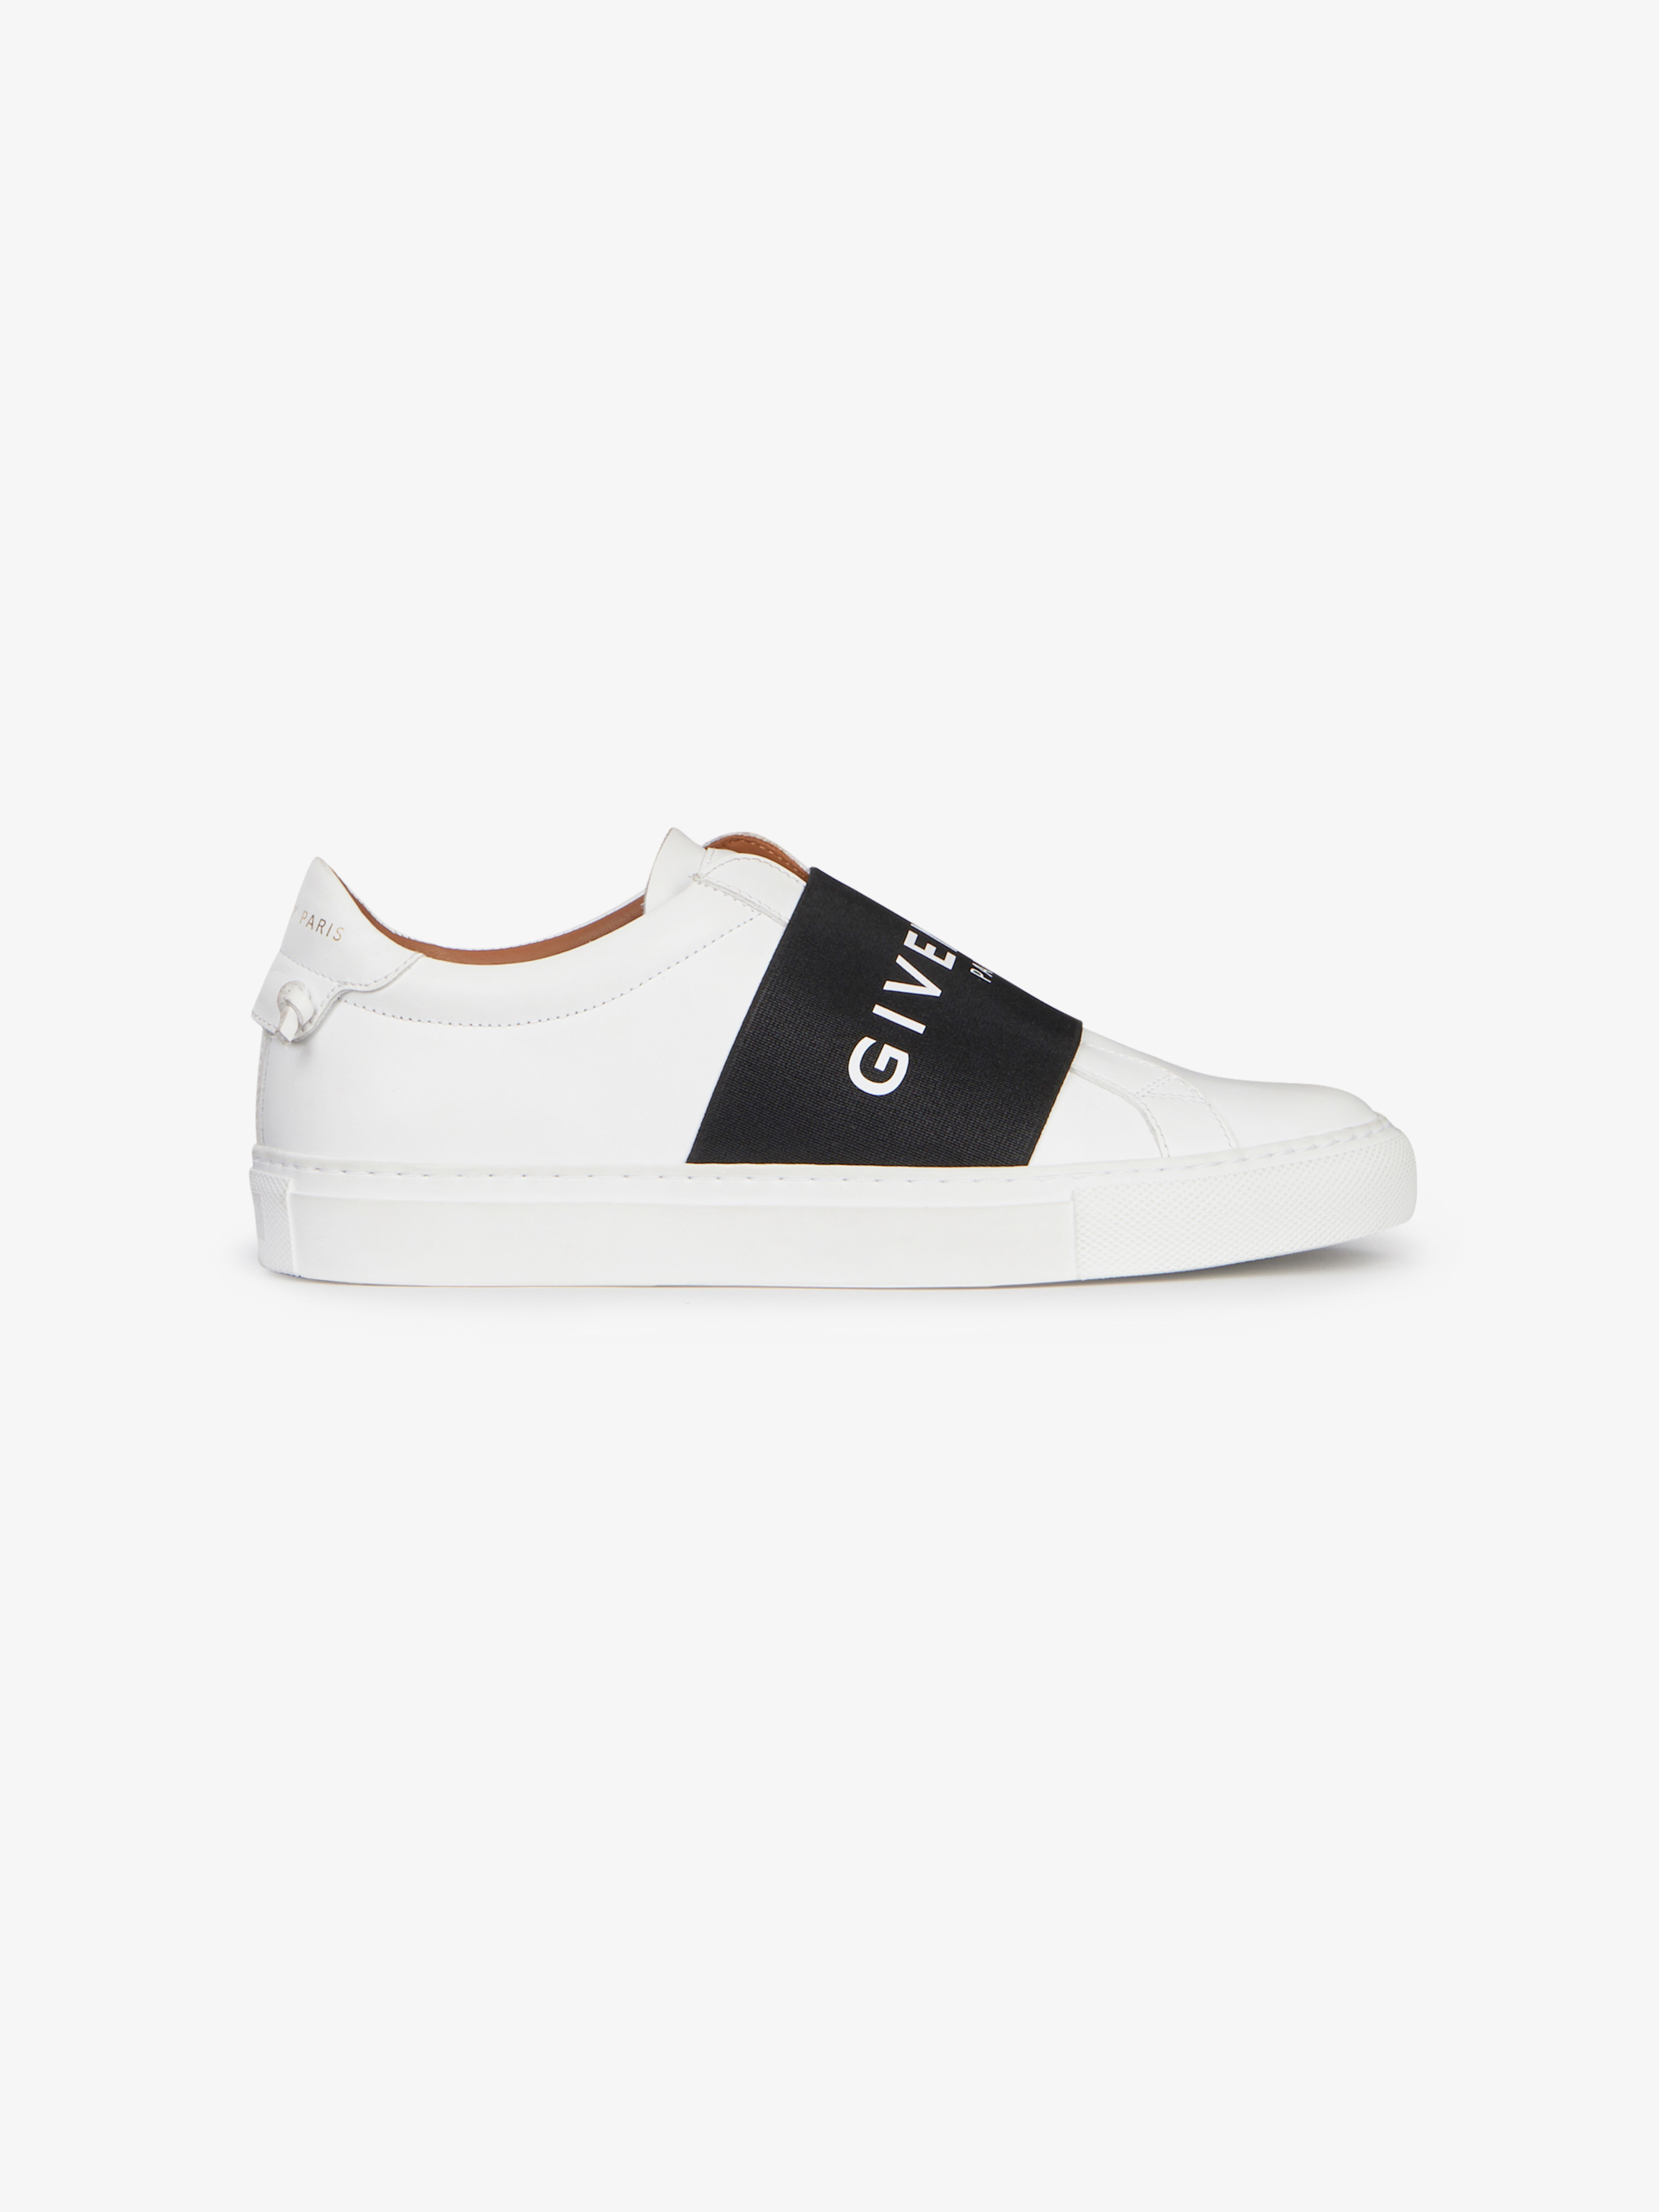 Sneakers in leather with GIVENCHY PARIS elastic strap